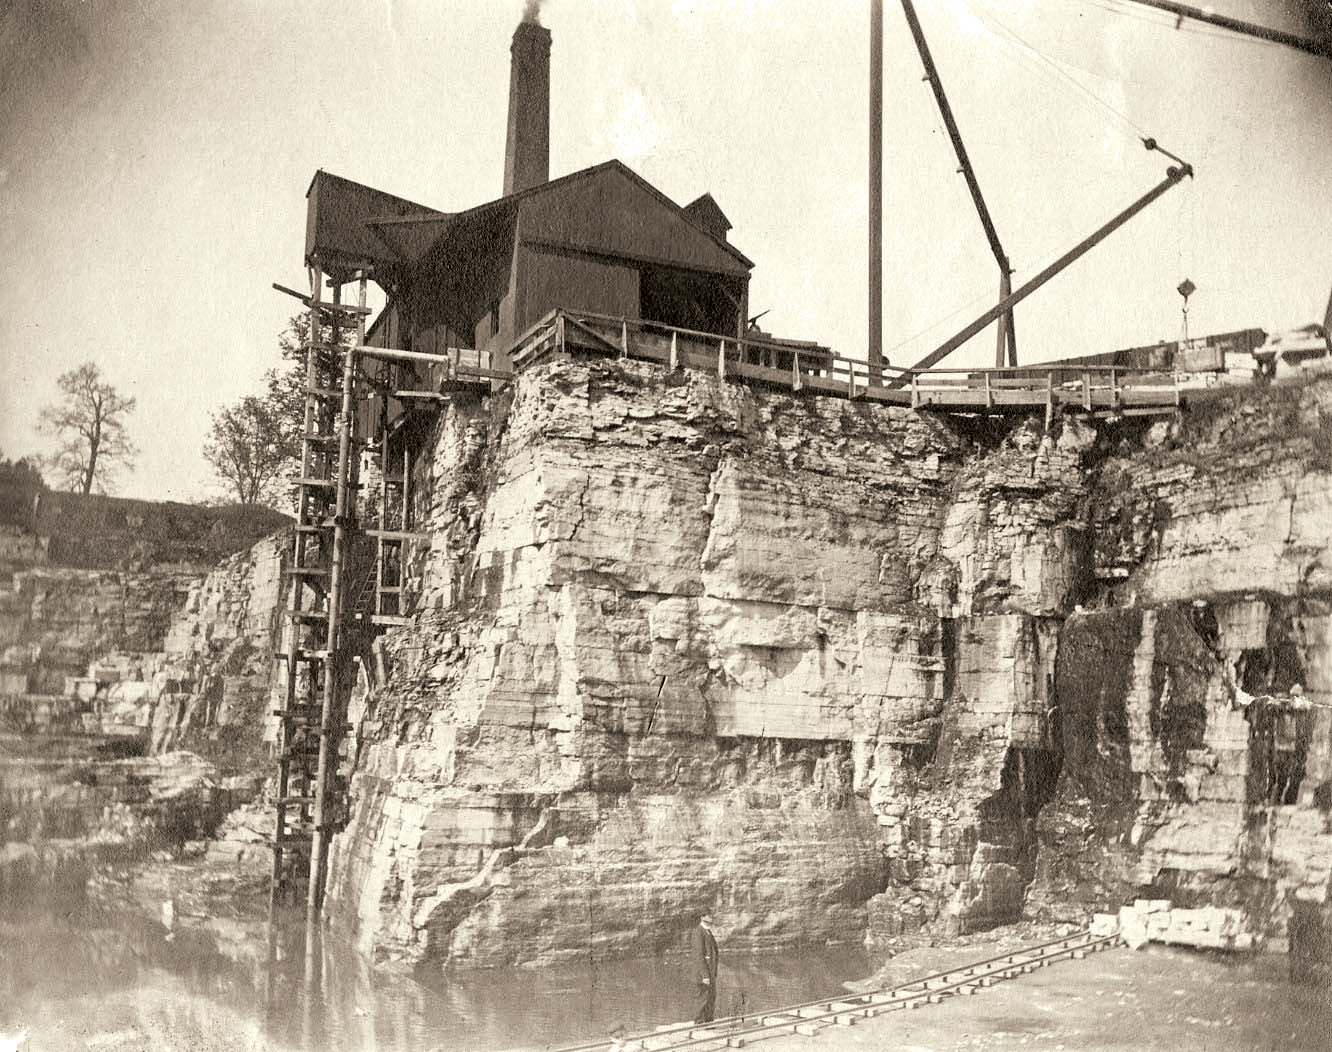 Naperville quarry, late nineteenth century